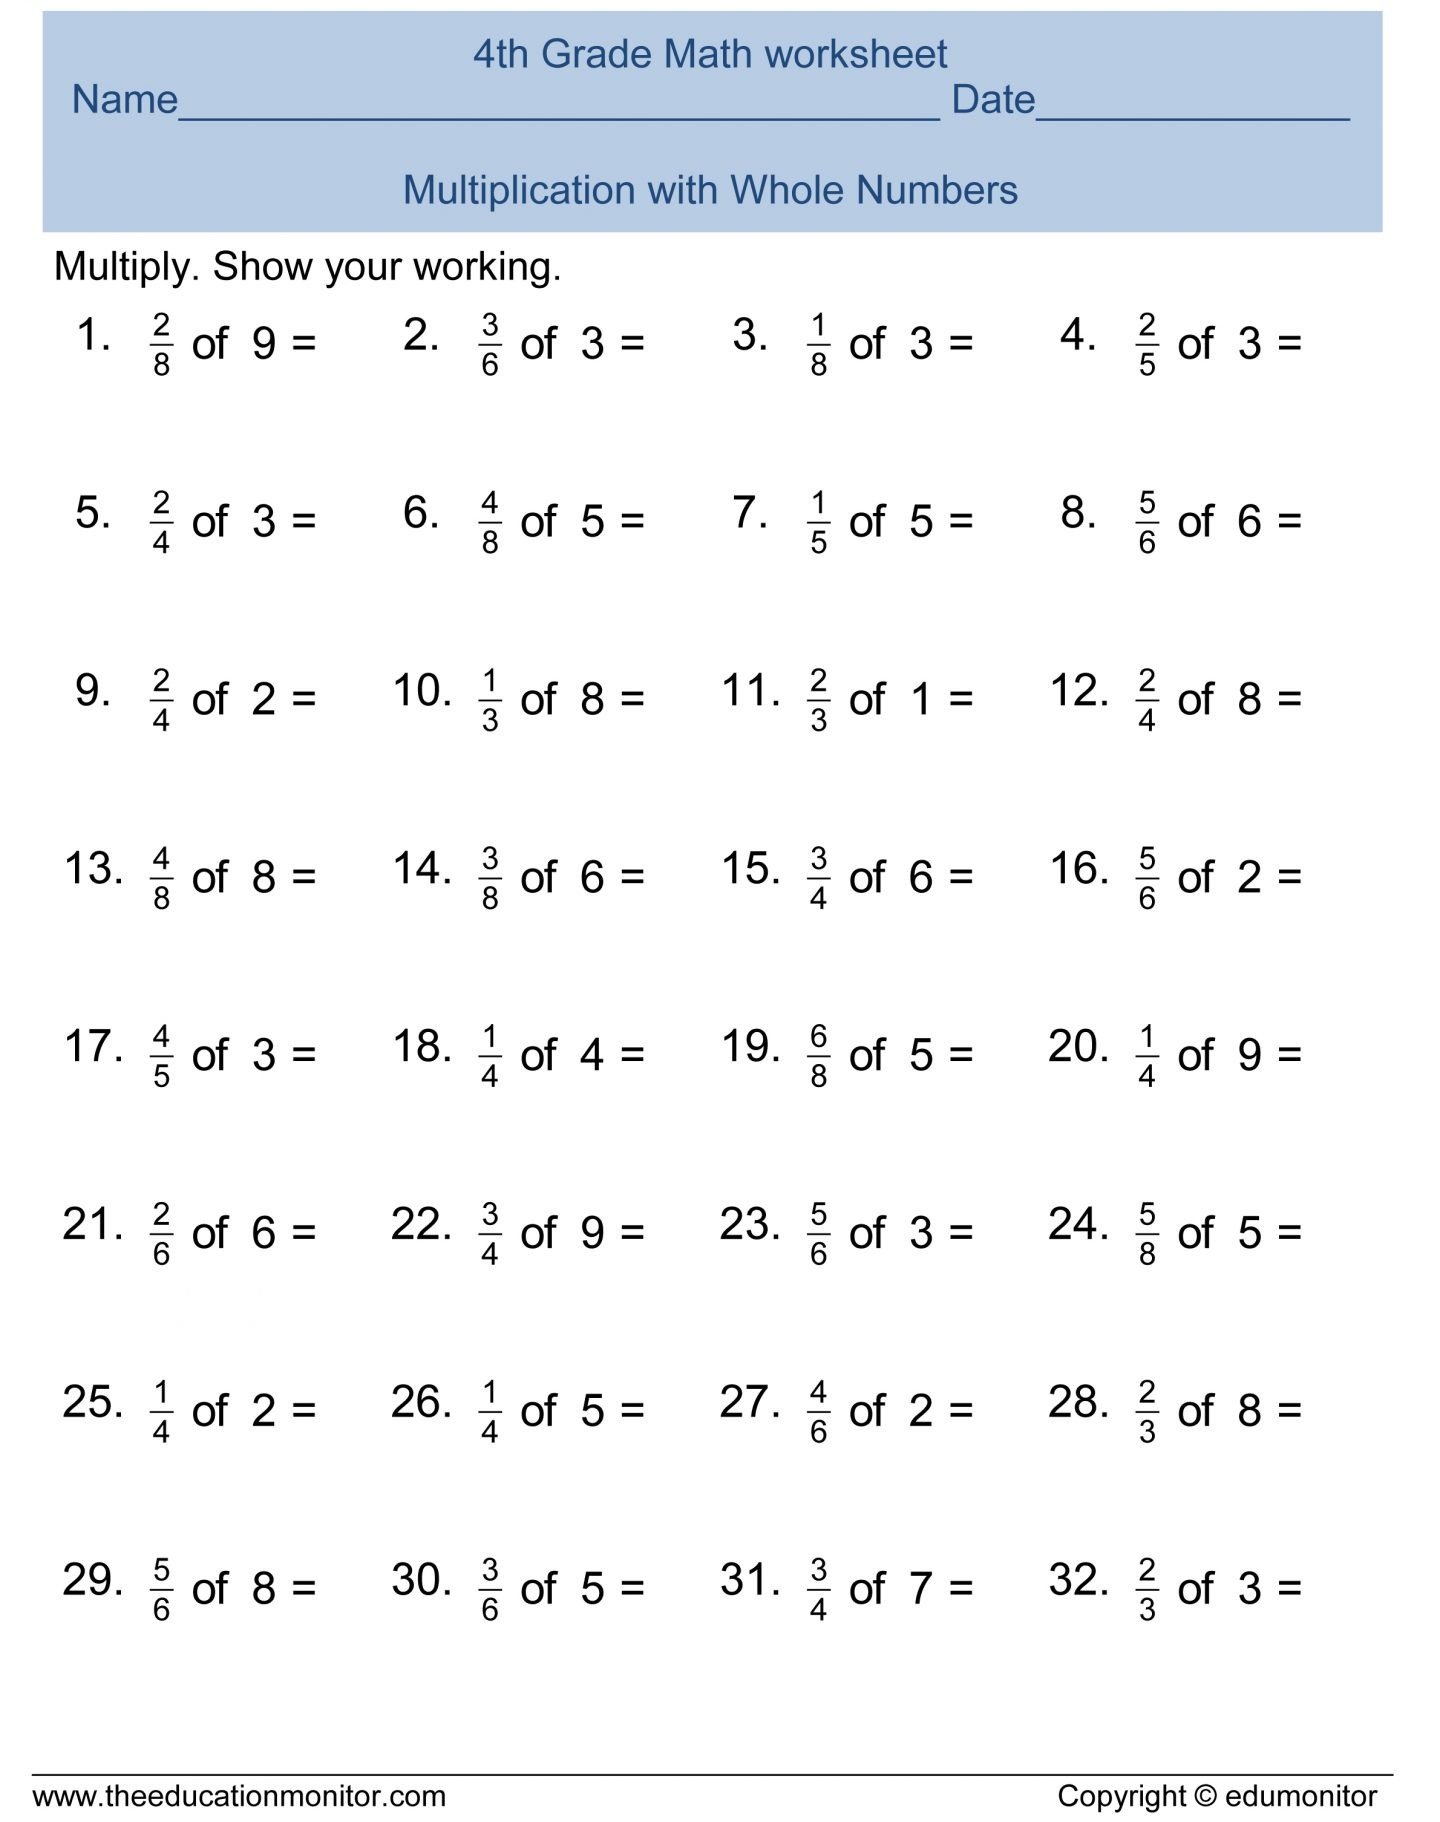 7Th Grade Math Worksheets Free Printable With Answers Stunning - 7Th   7Th Grade Math Printable Worksheets With Answers